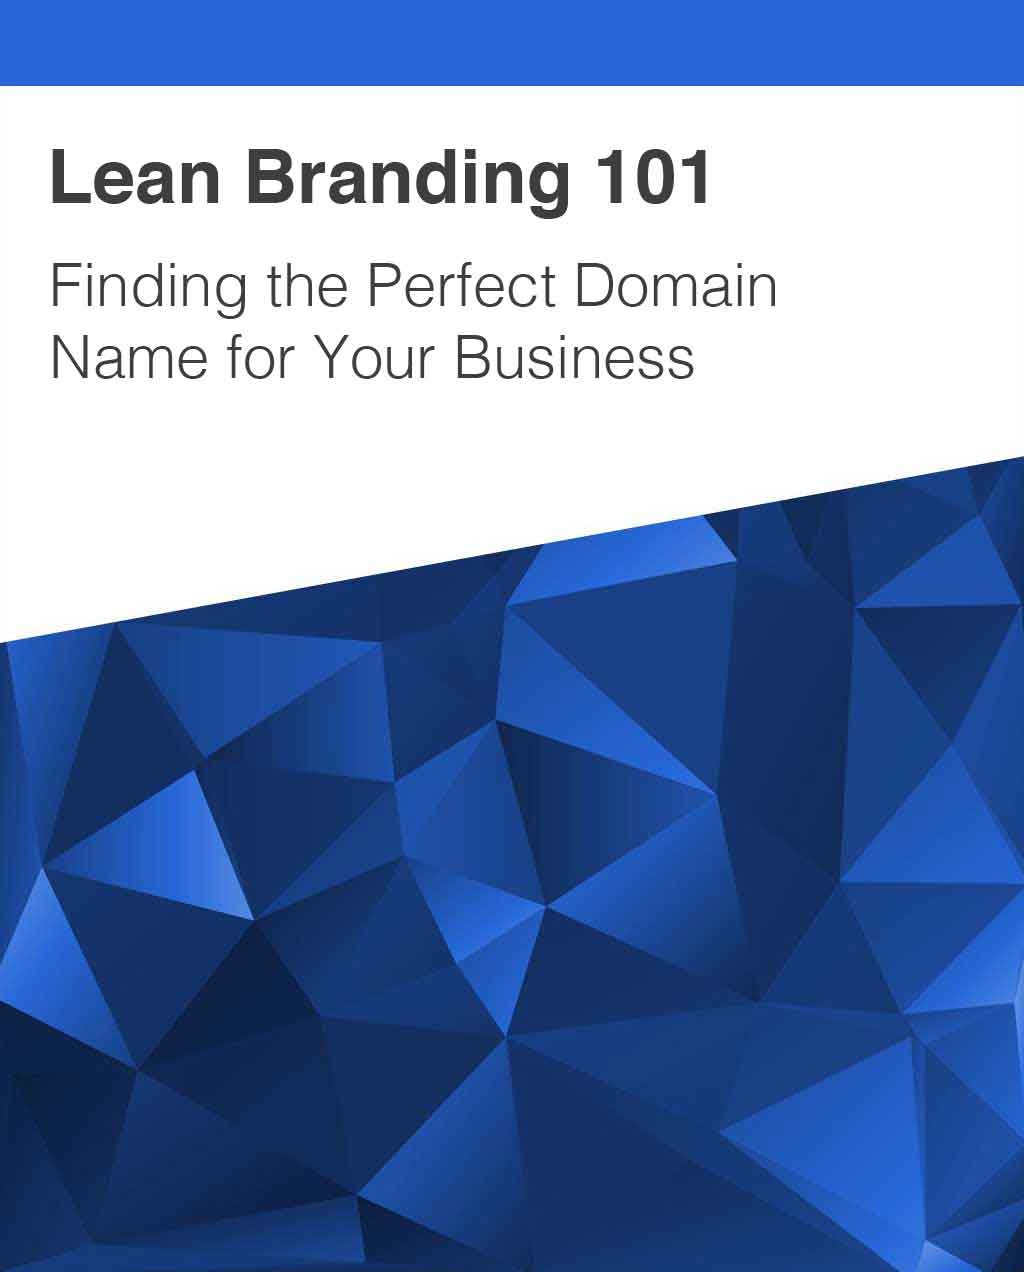 Lean Branding and Domain Names